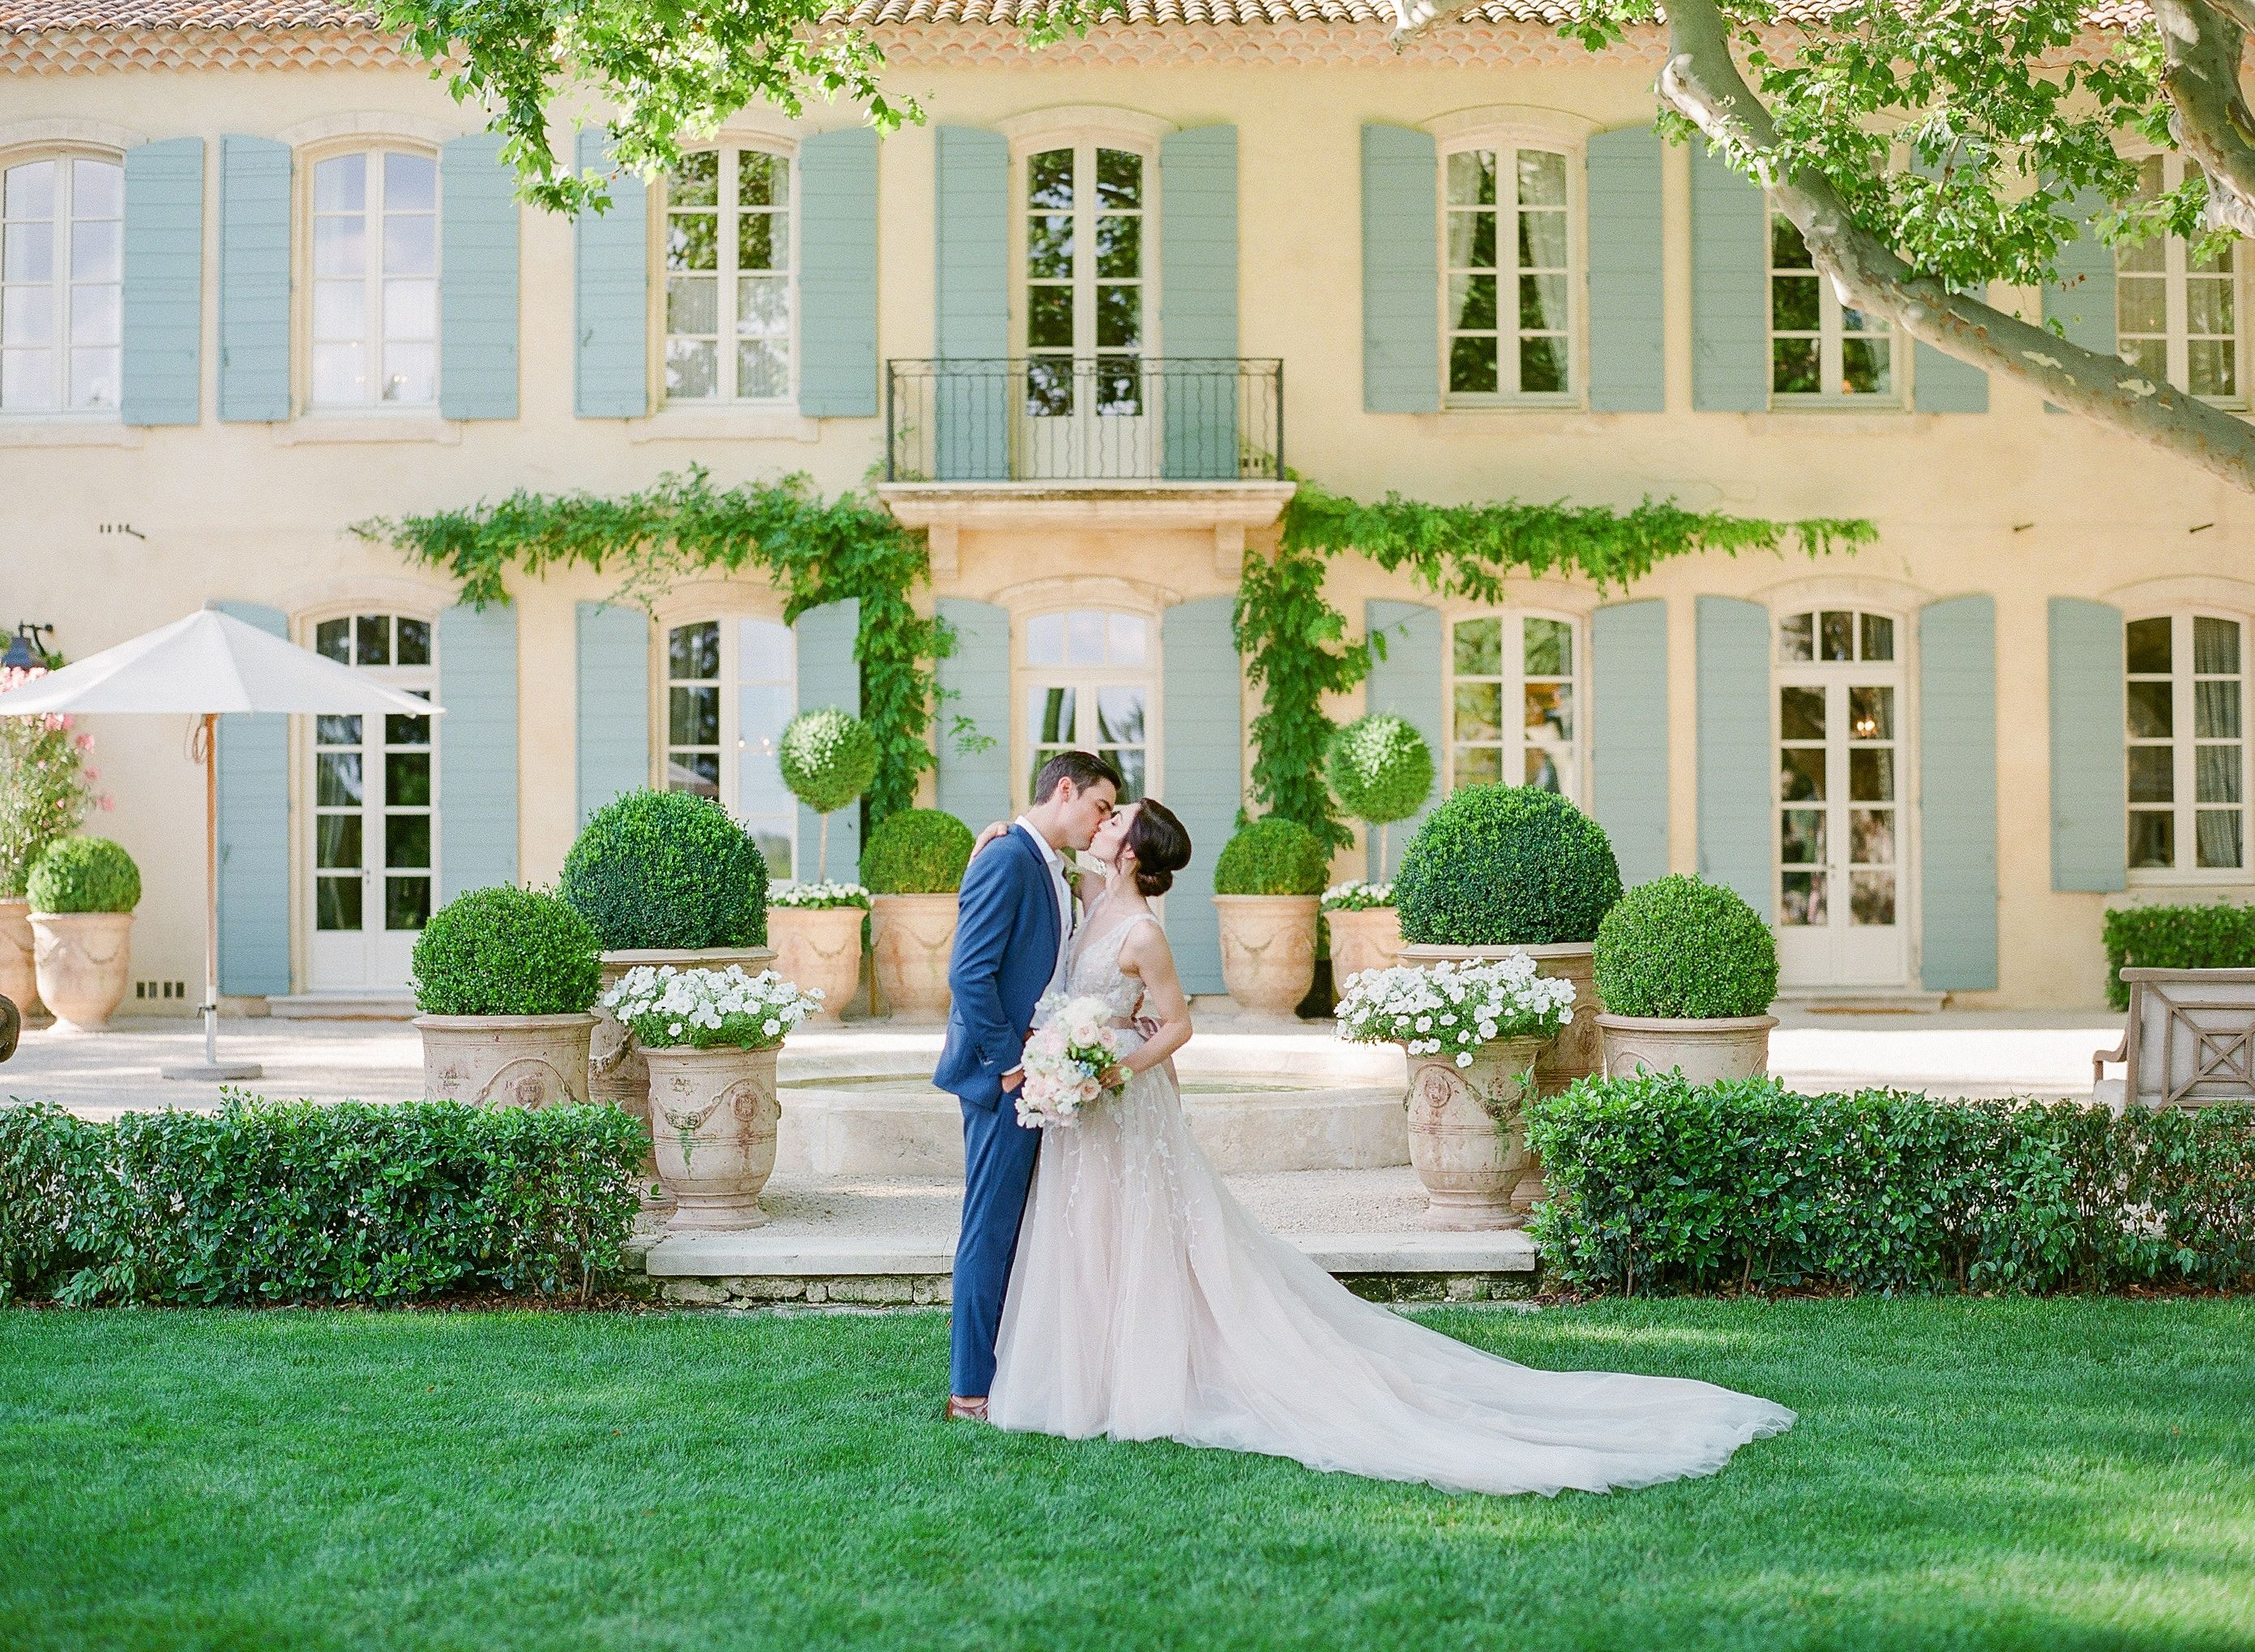 Meryl Davis and Fedor Andreev's Wedding Was a Provencal Dream